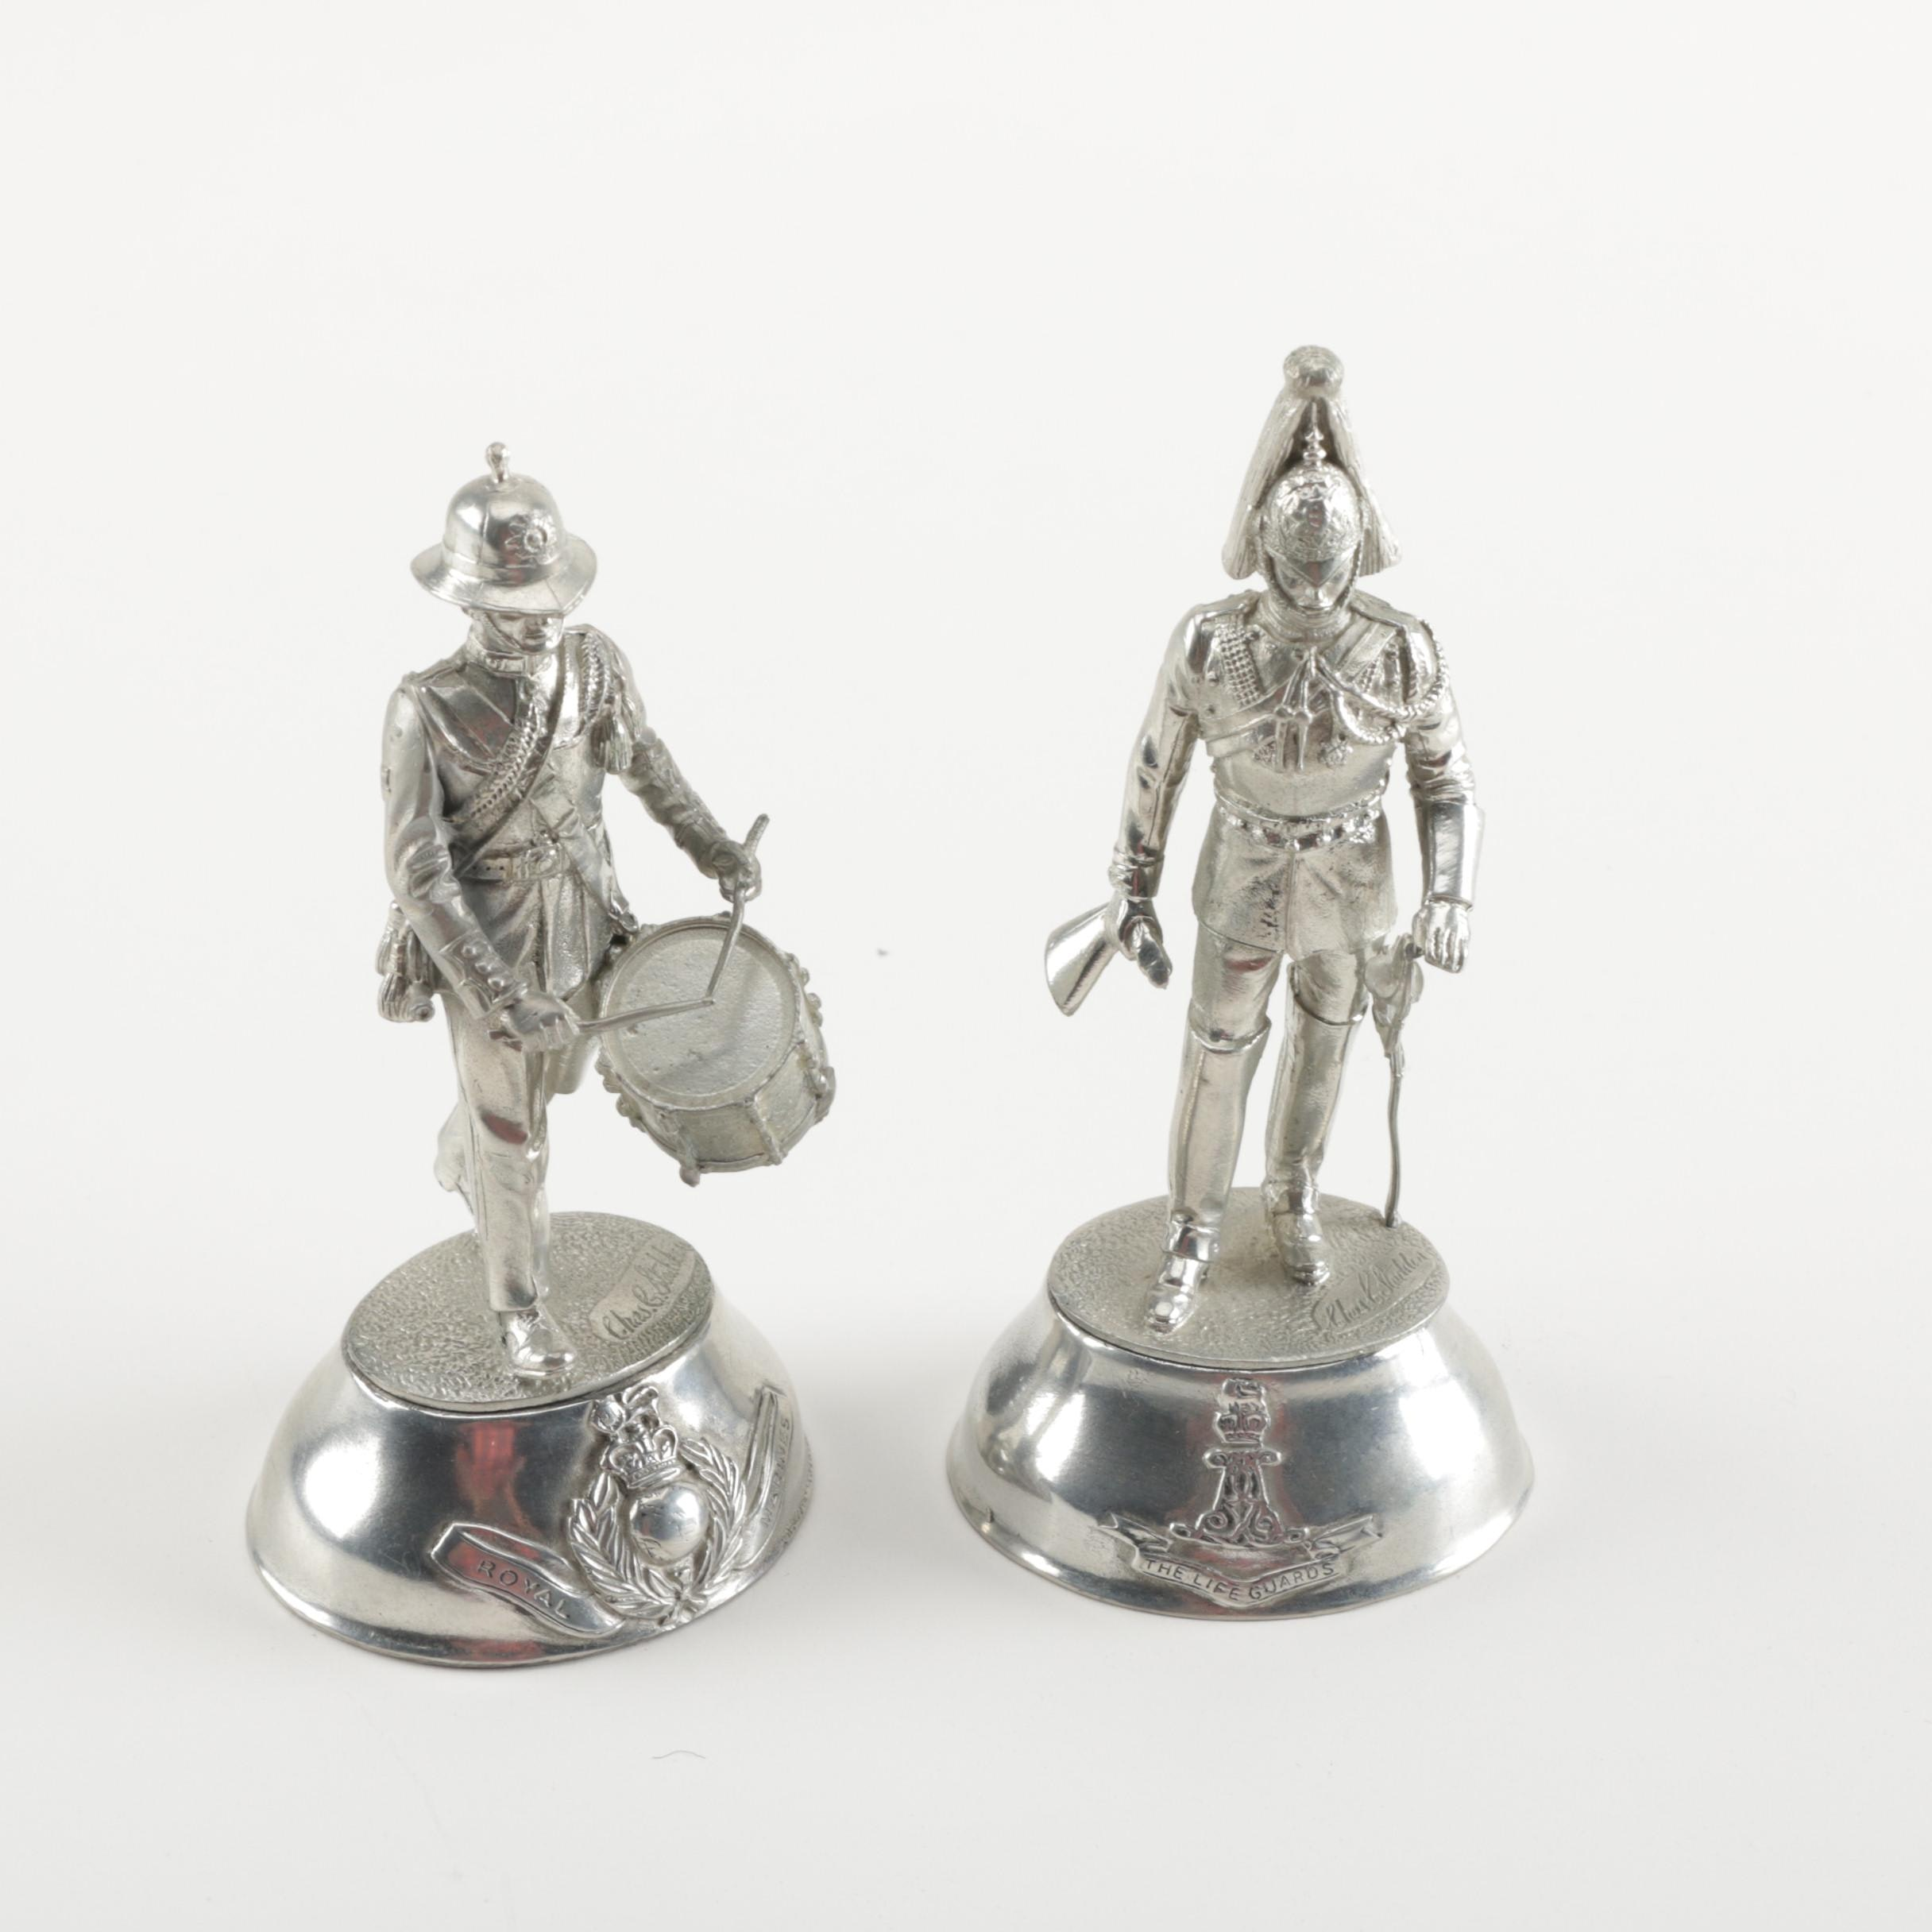 Pair of Pewter Soldier Figurines